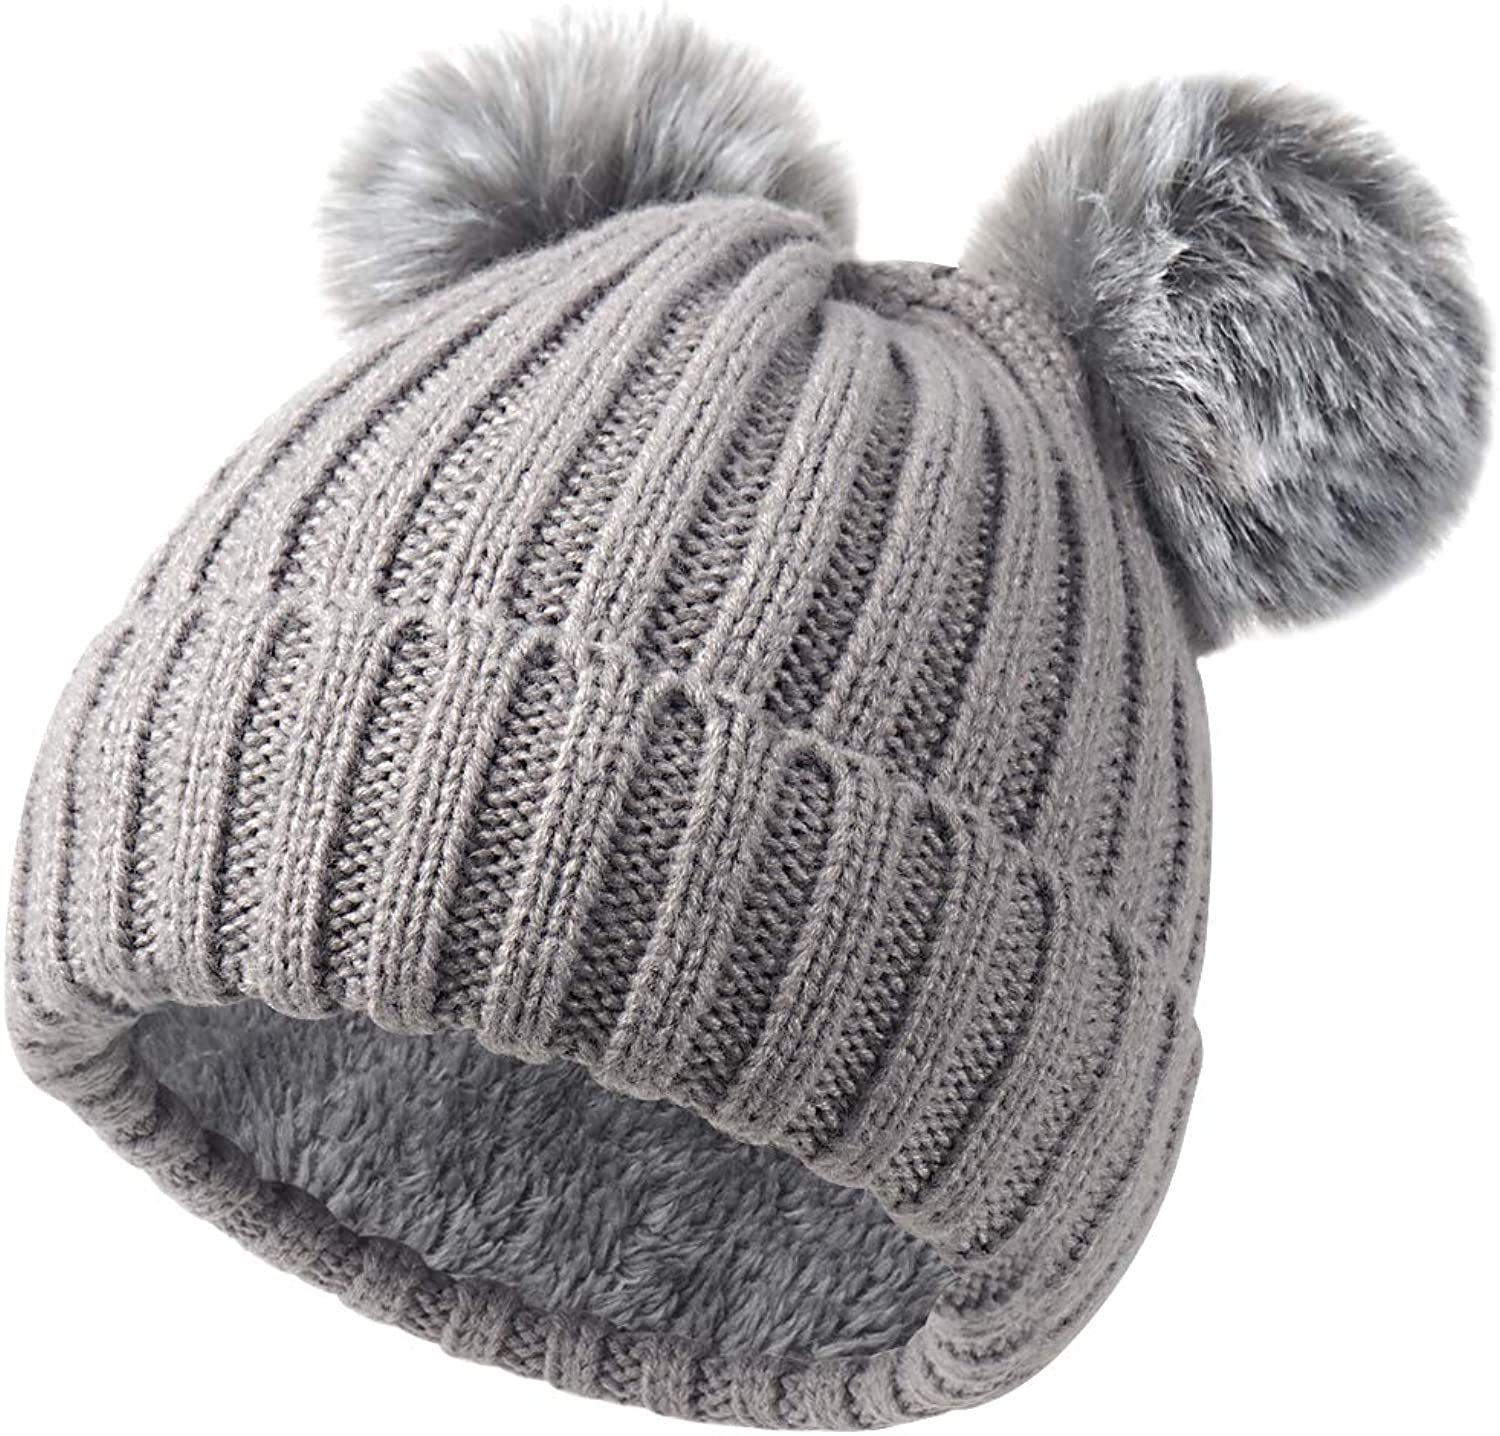 Onway Kint Slouchy Beanie Hat with Warm Fleece Lined and Detachable 2 Faux Fur Pom Pom for Winter